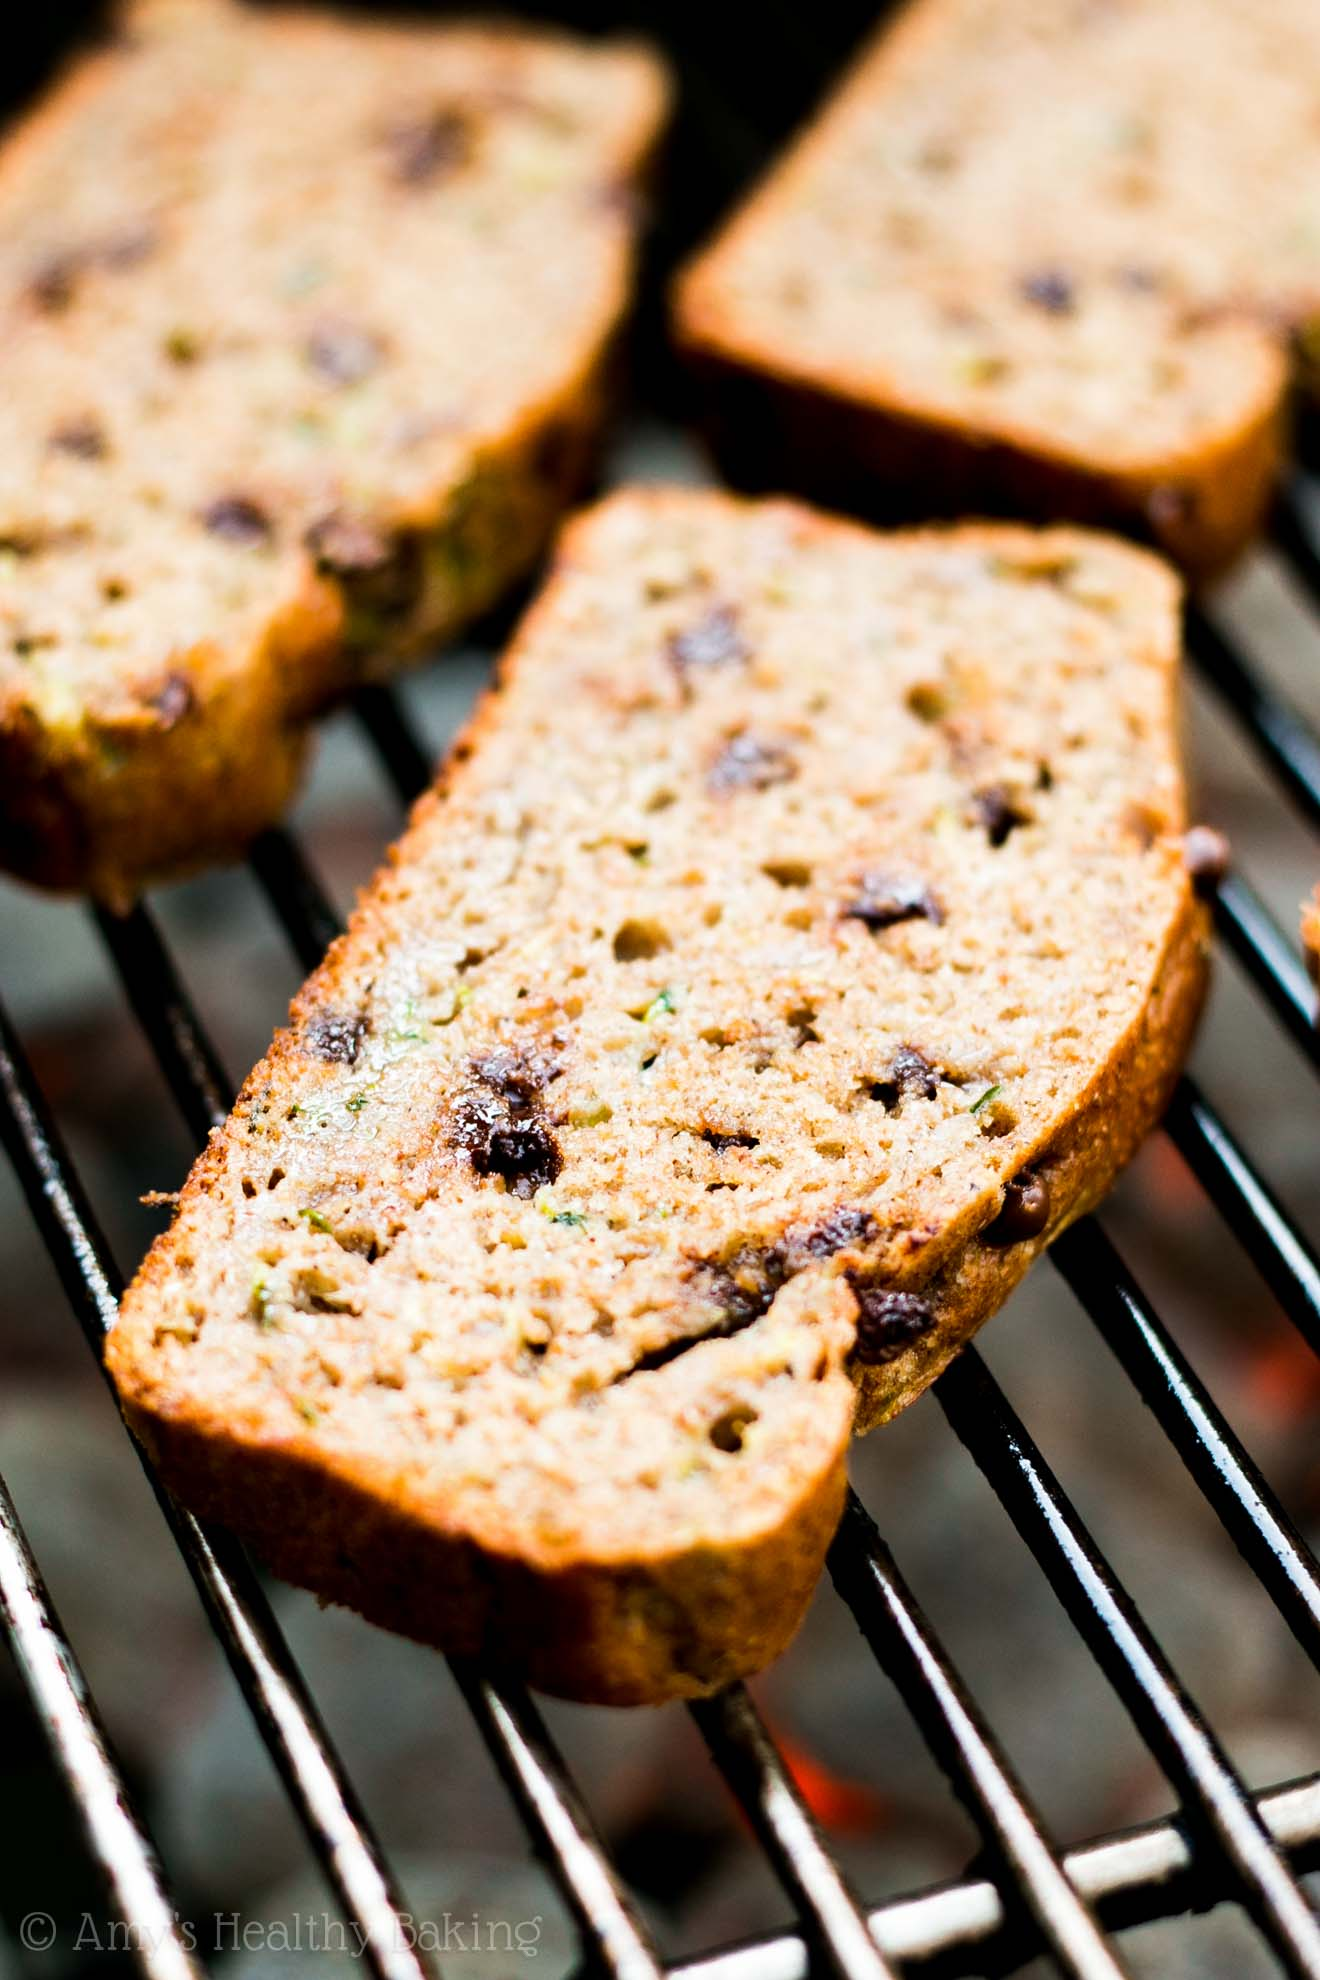 Grilled Chocolate Chip Zucchini Bread -- my favorite easy & healthy summer dessert recipe! Barely 10 minutes to make & nearly 5g of protein!